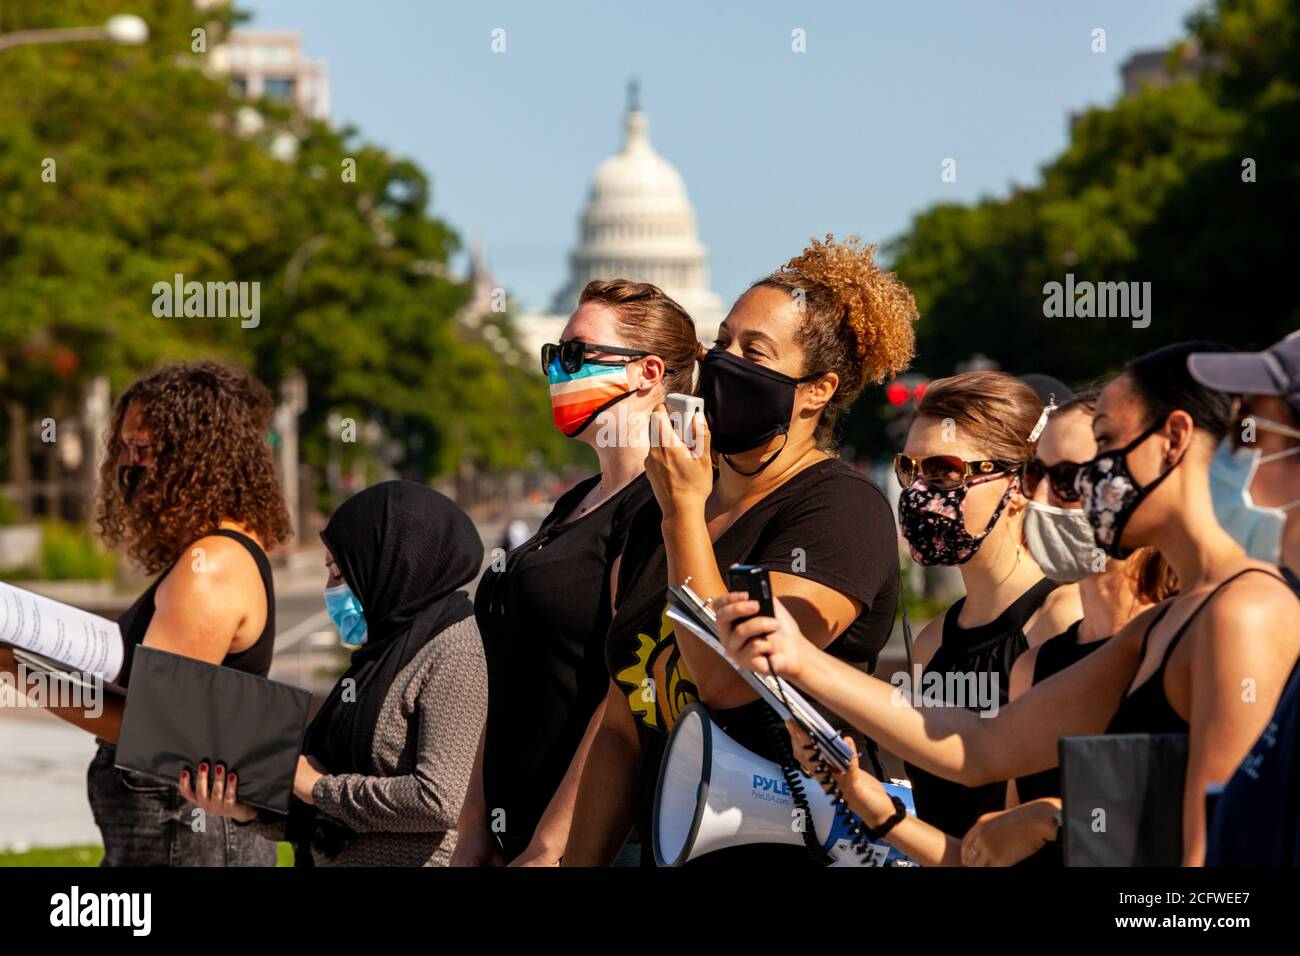 Washington, DC, USA, September 7, 2020. Pictured: Members of Songrise and the Justice Choir of DC sing during Let Freedom Sing, with the United States Capitol in the background. Let Freedom Sing was a community-building protest and voter registration event by the Freedom Day Foundation and Head Count. Credit: Allison C Bailey/Alamy Credit: Allison Bailey/Alamy Live News Stock Photo